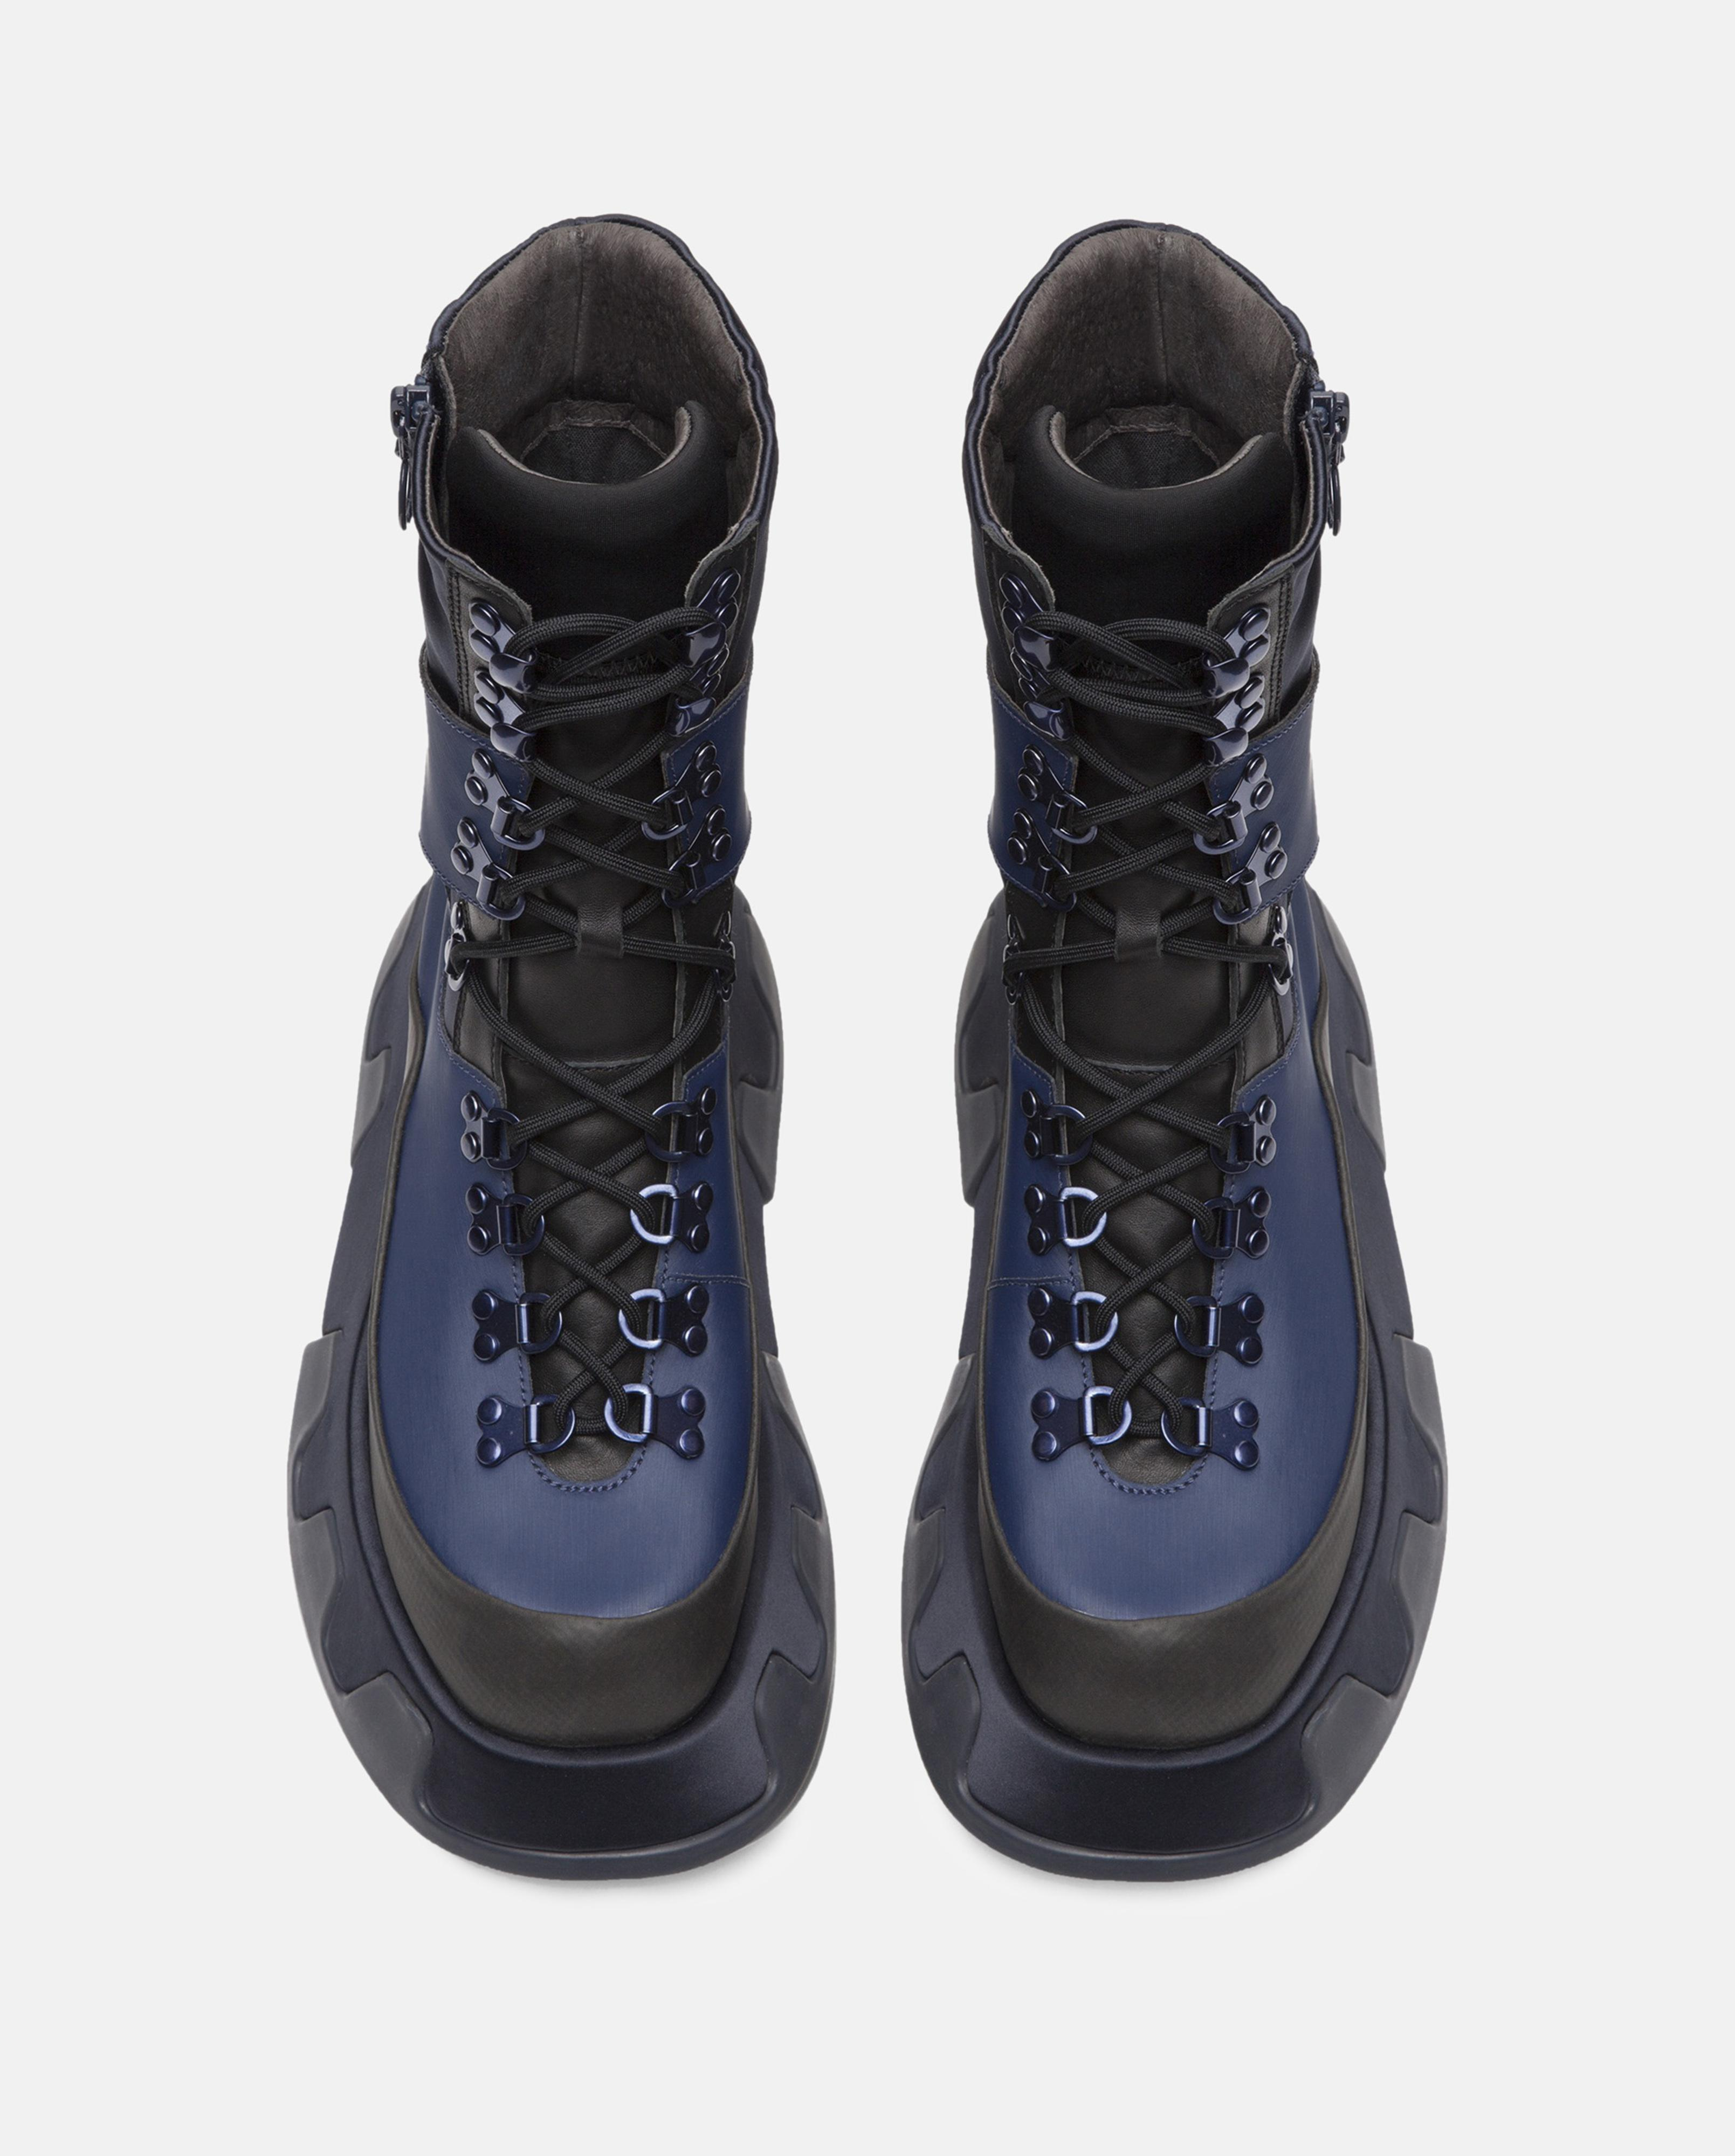 Lyst Extreme Extreme Camper Boots Lyst Wilma UgUEq1xw